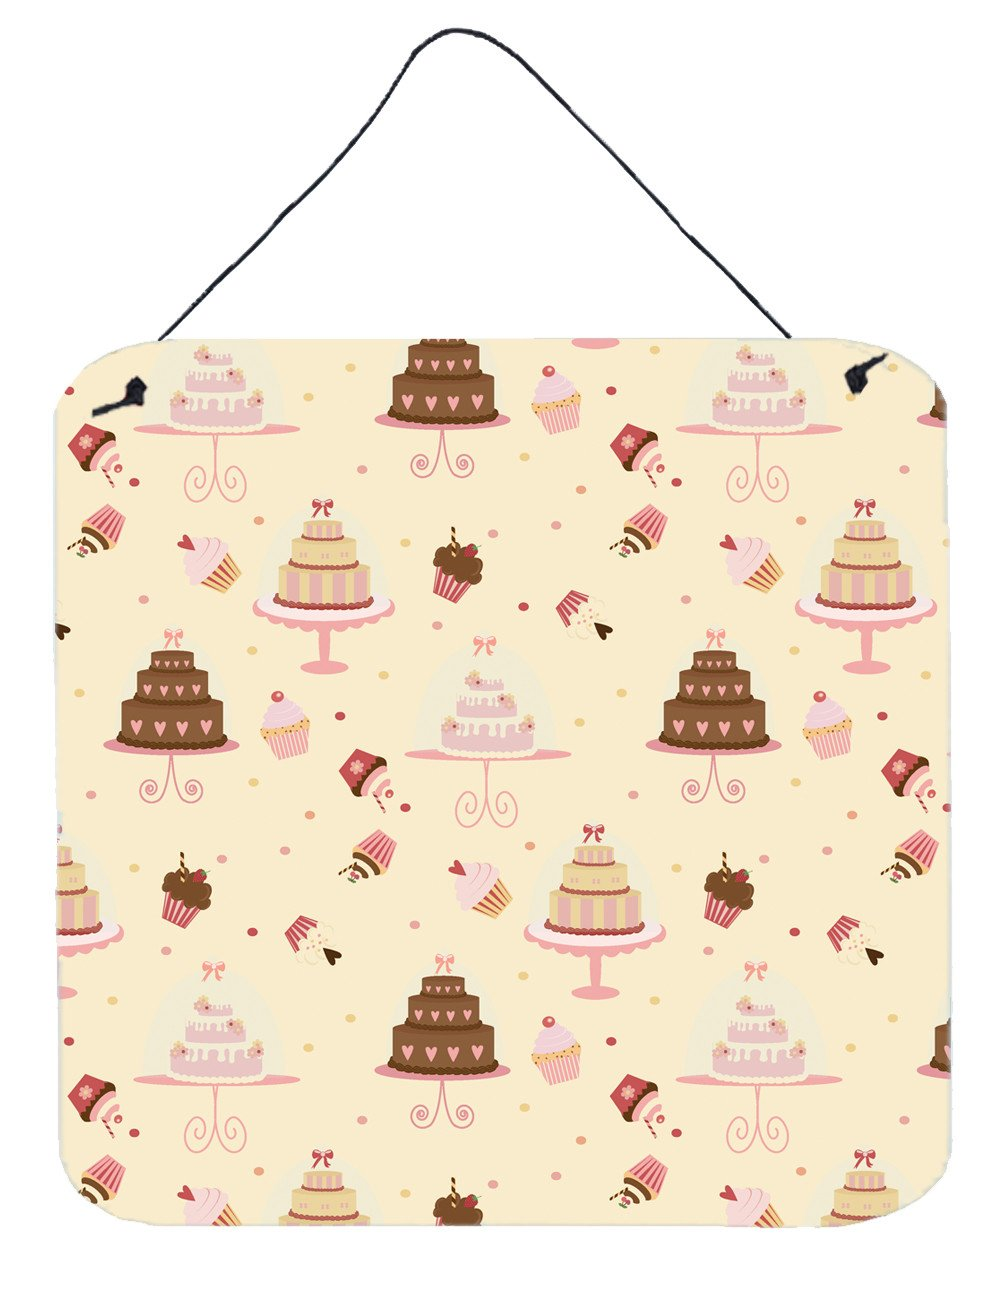 Cakes and Cupcakes Wall or Door Hanging Prints BB7310DS66 by Caroline's Treasures